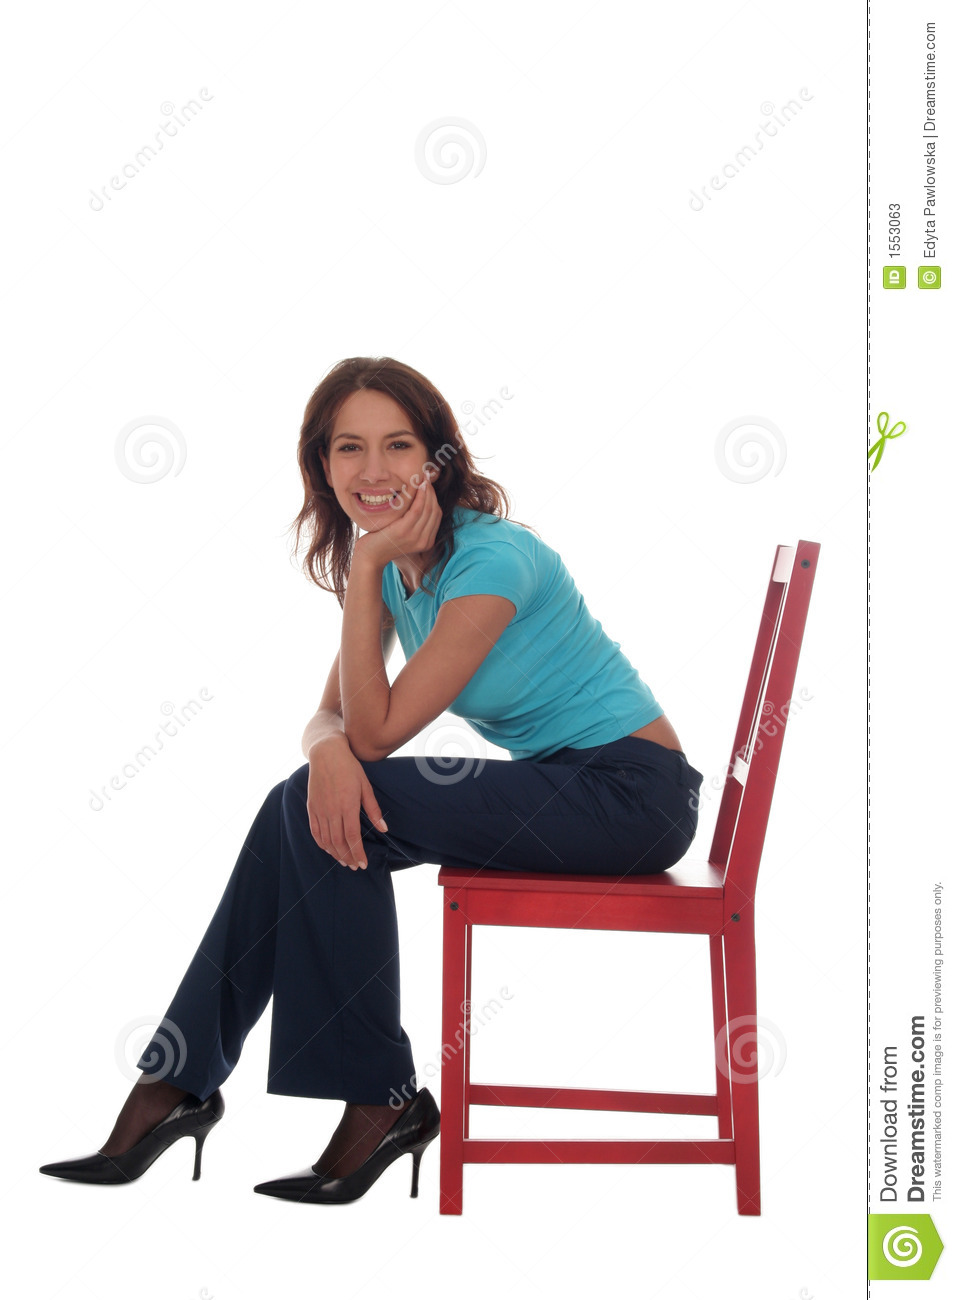 woman sitting on chair stock image image of pretty person 1553063. Black Bedroom Furniture Sets. Home Design Ideas